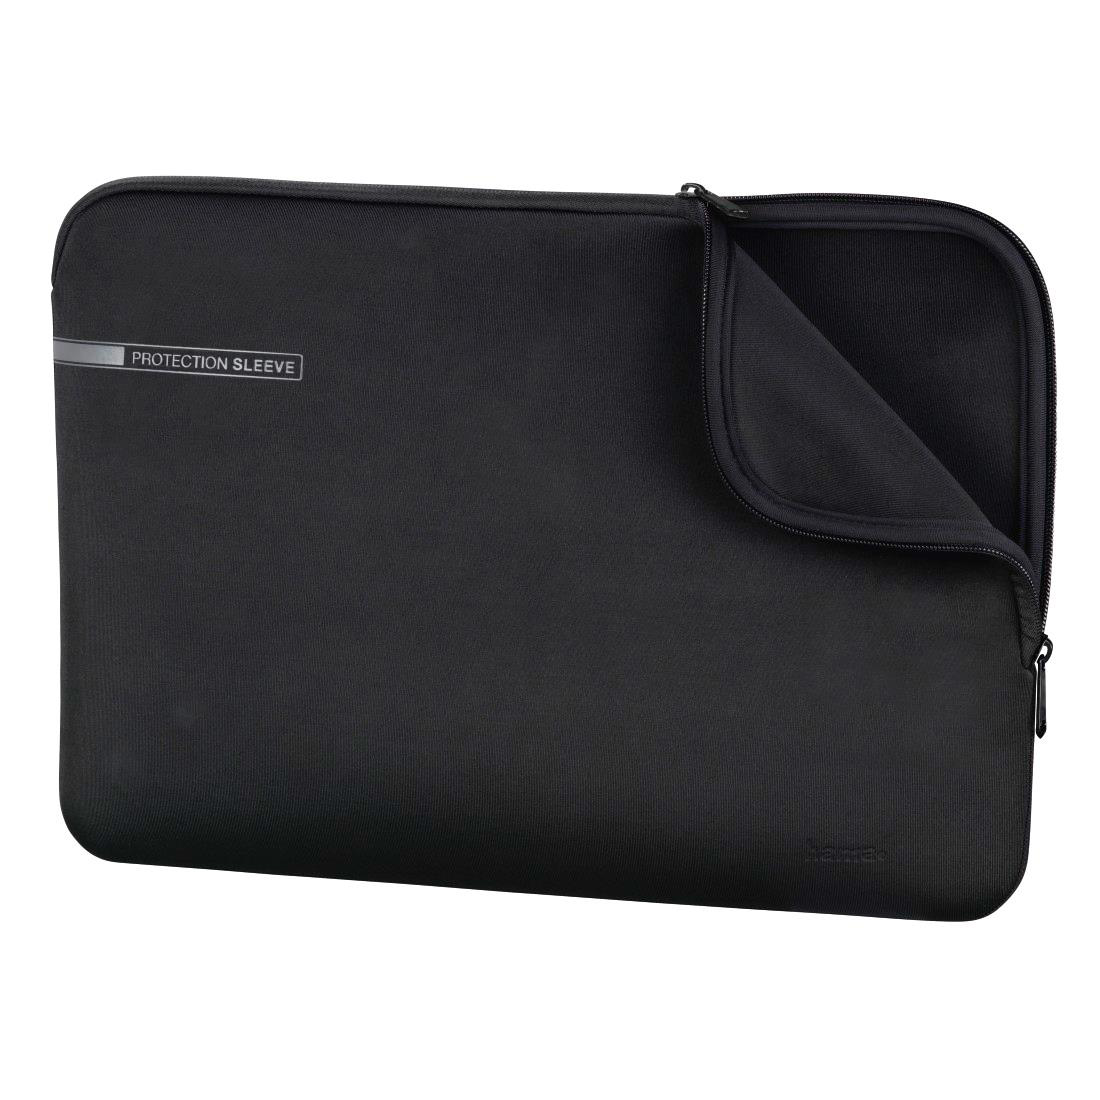 Briefcases & Luggage Hama 15.6inch Notebook Sleeve Neoprene Black Ref 00101546